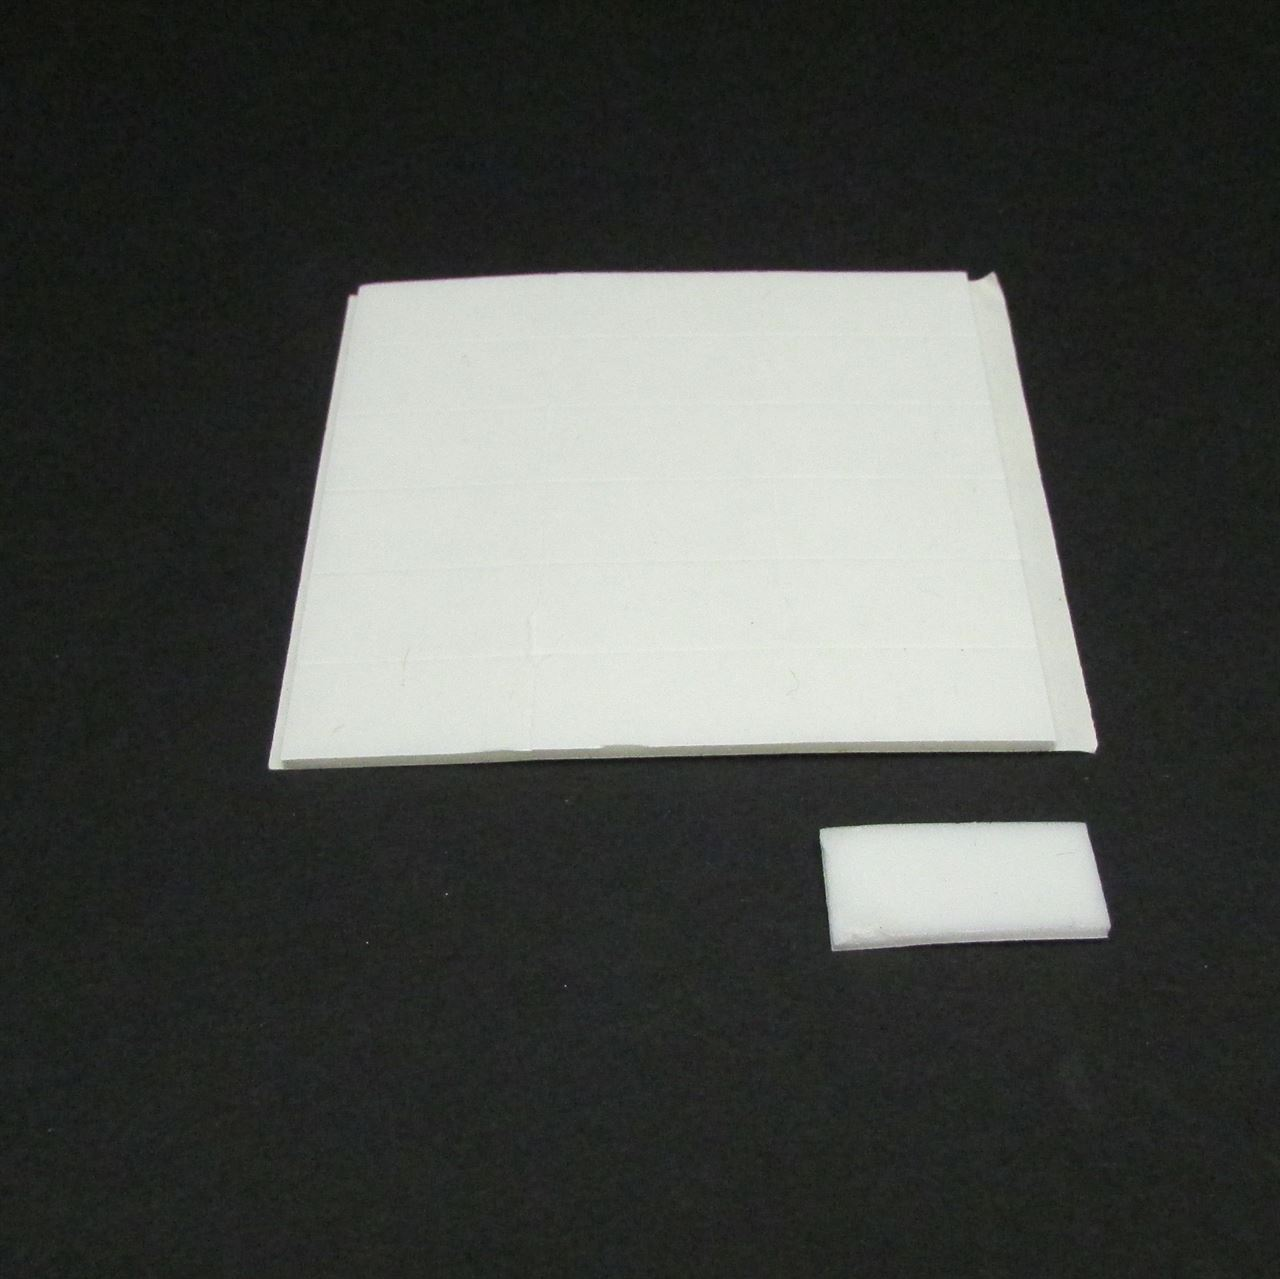 picture of doublesided foam tape